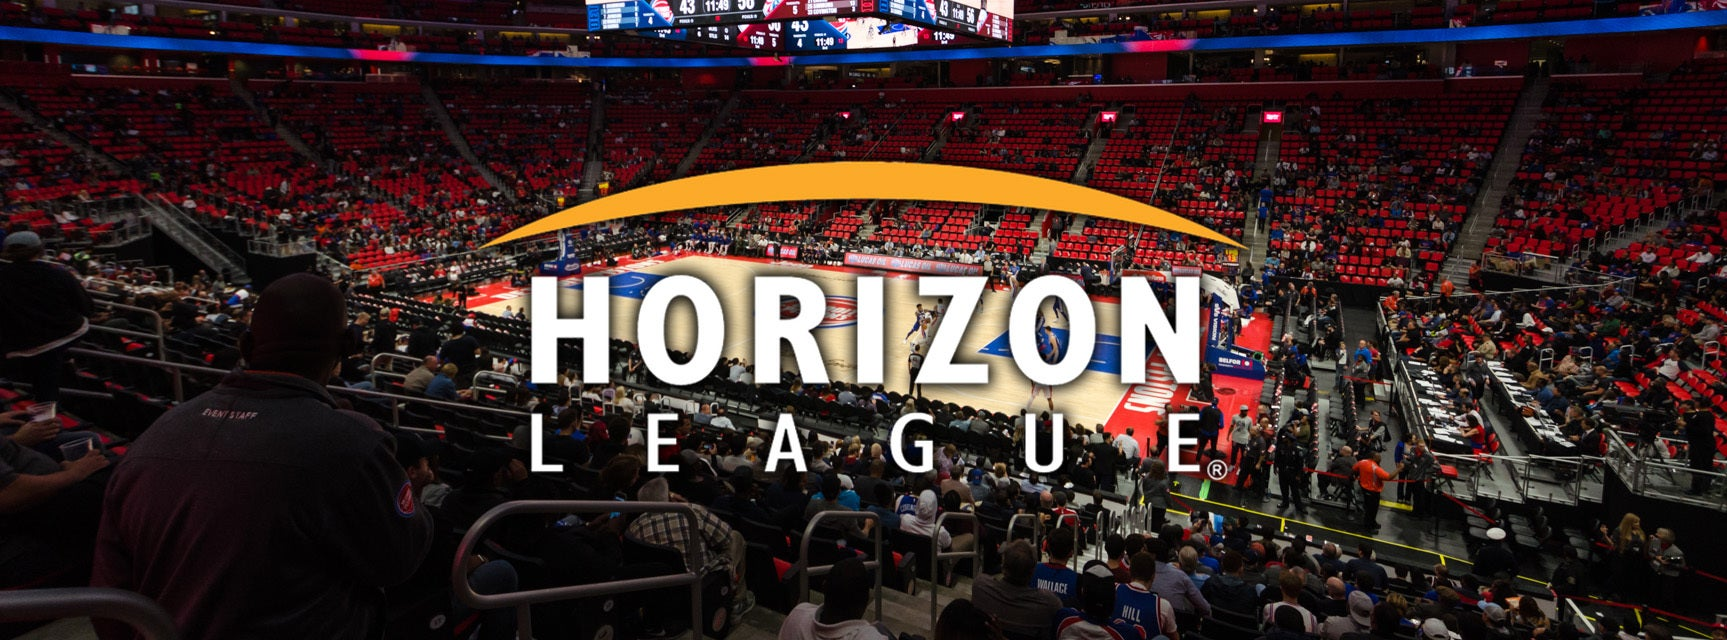 Horizon League Basketball Tournament Tickets